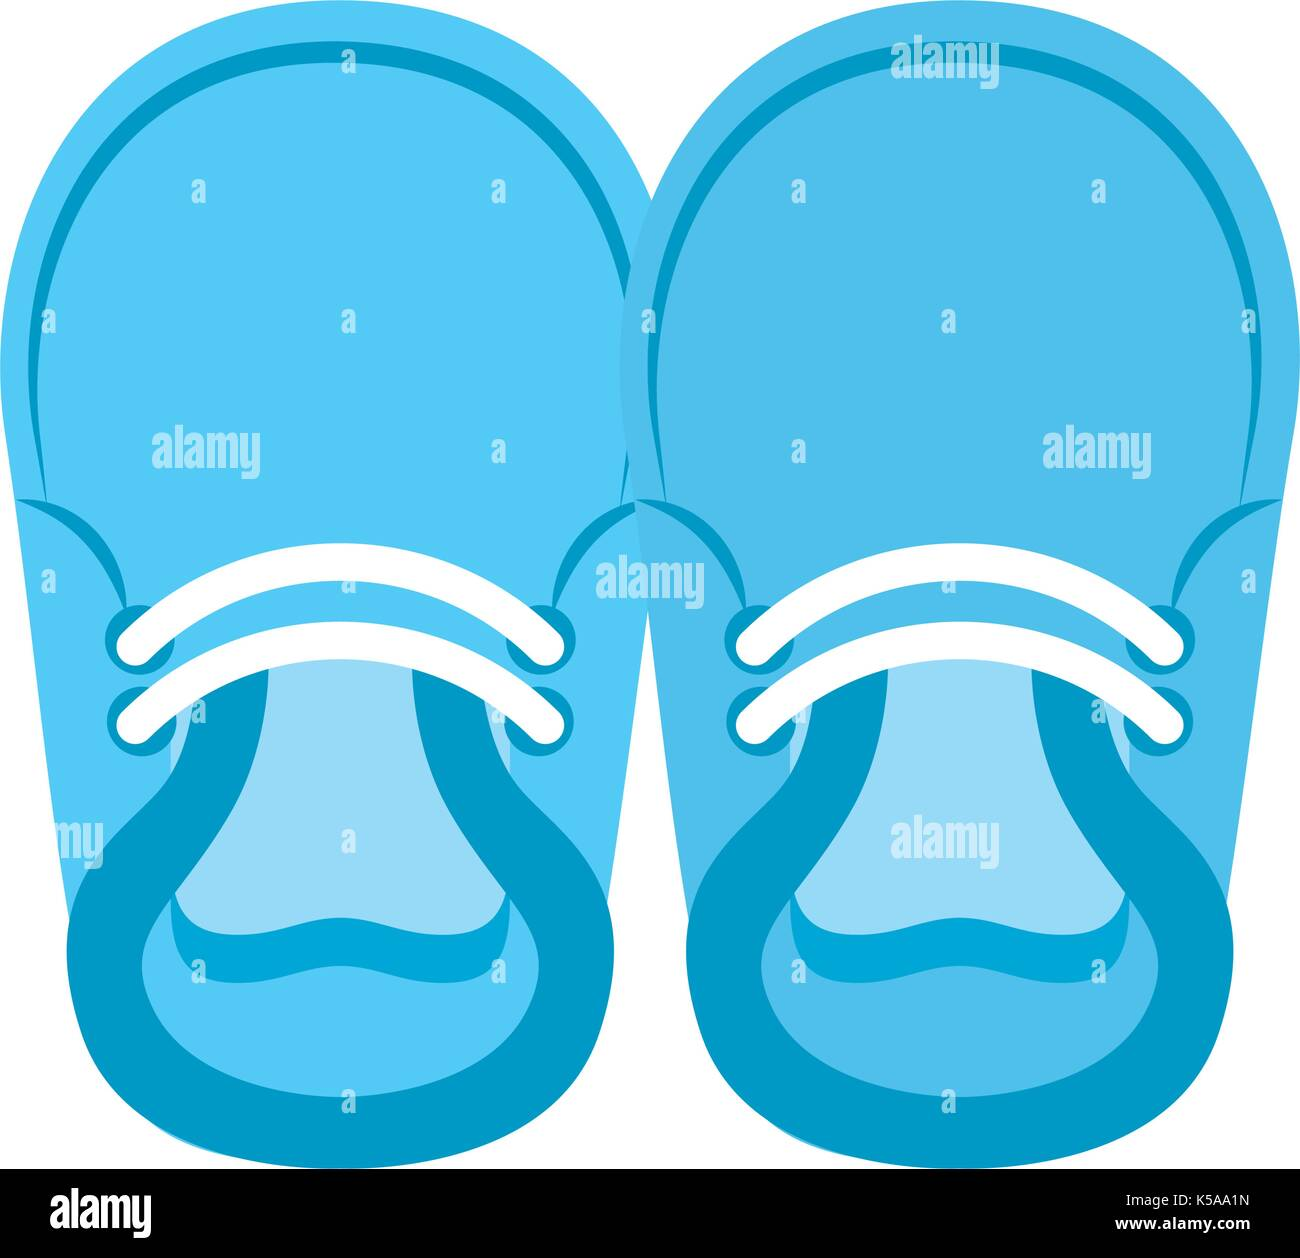 Baby Booties For Boy Child Cute Image Stock Vector Image Art Alamy